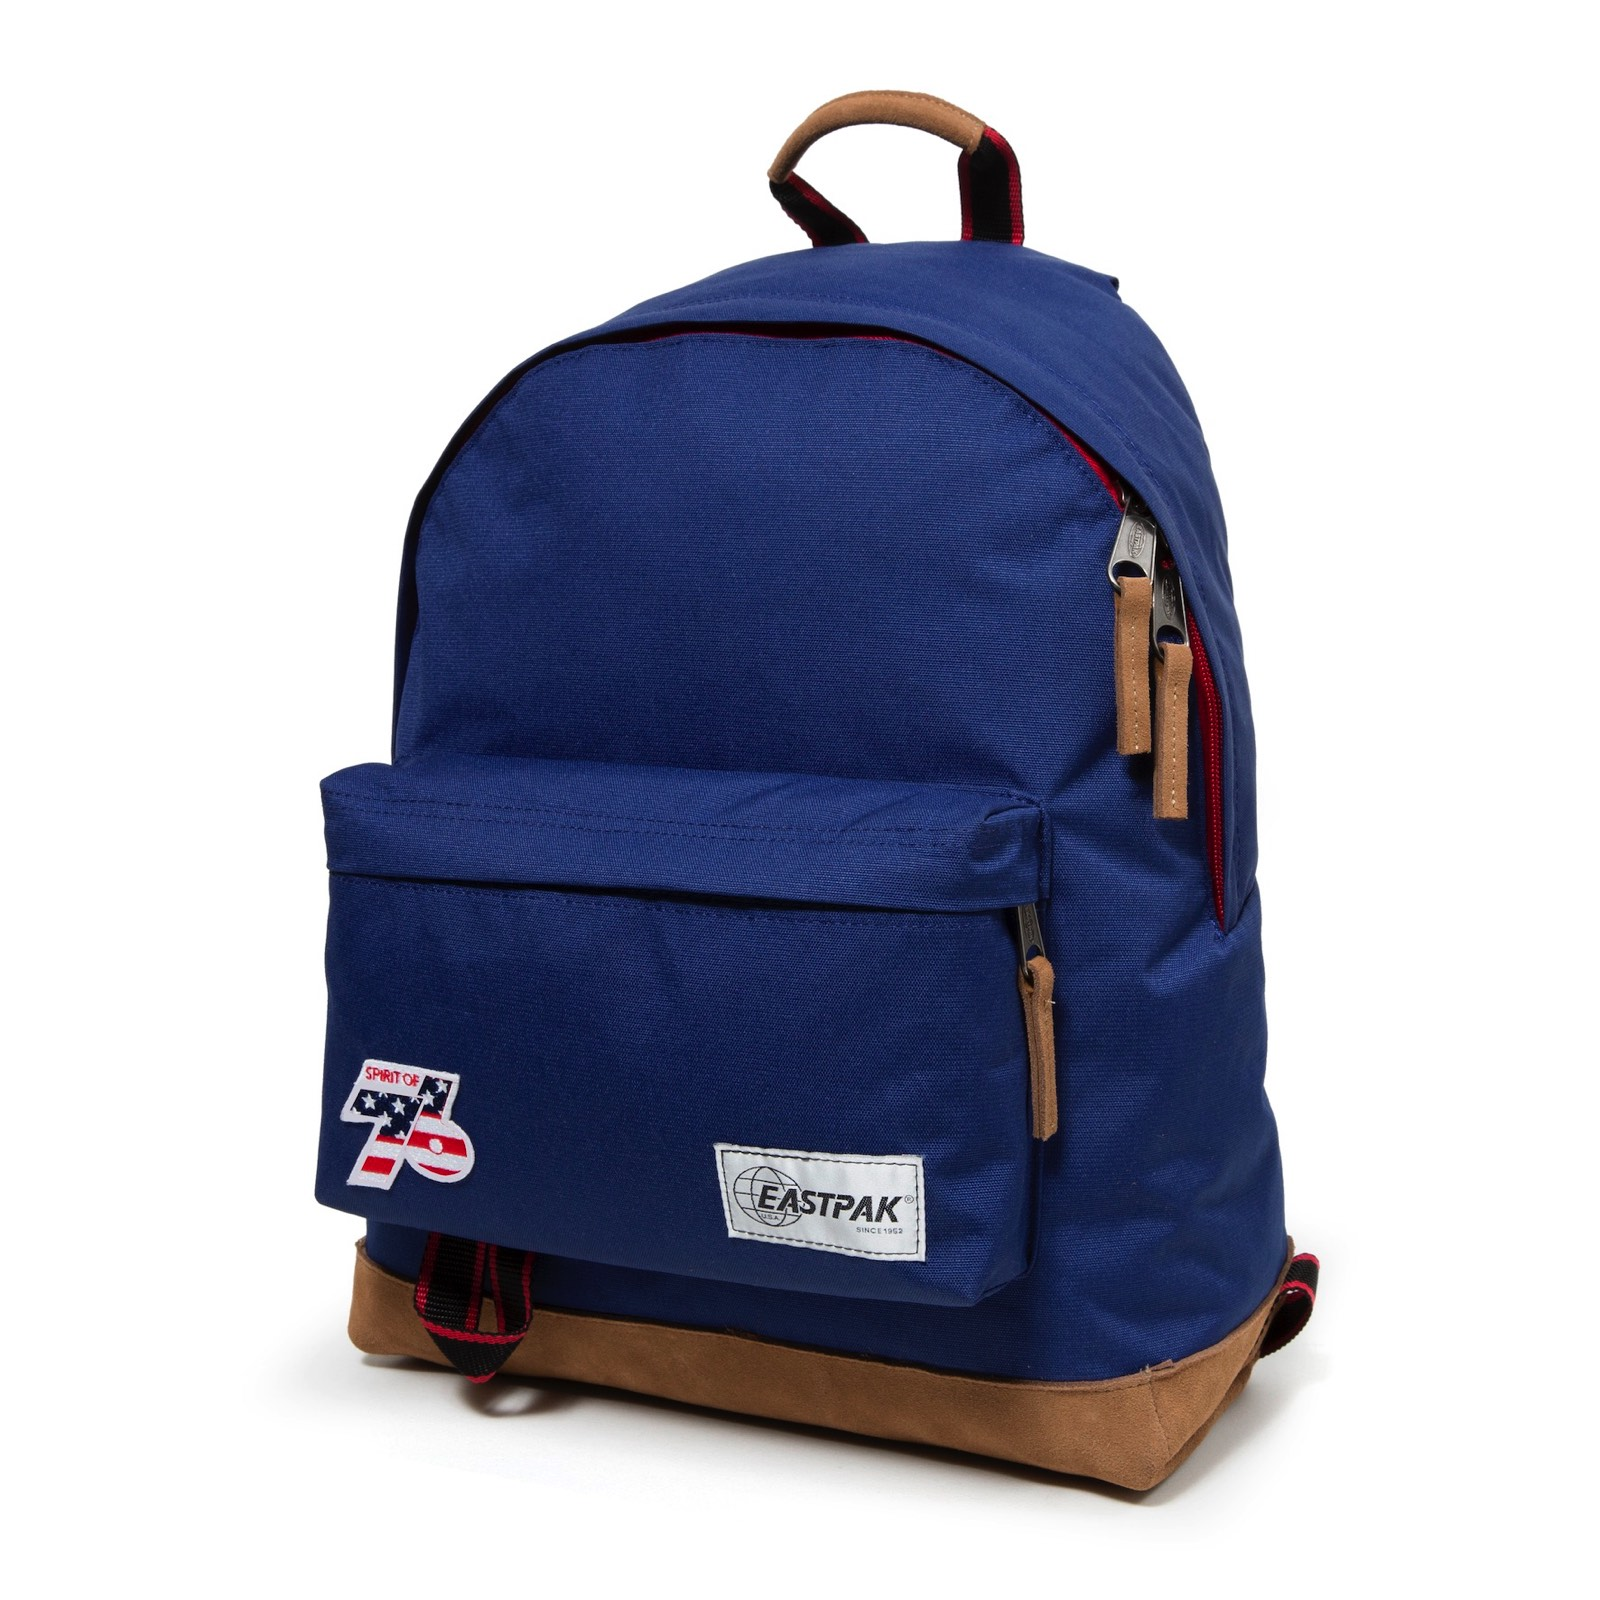 eastpak_spirit-of-76_11